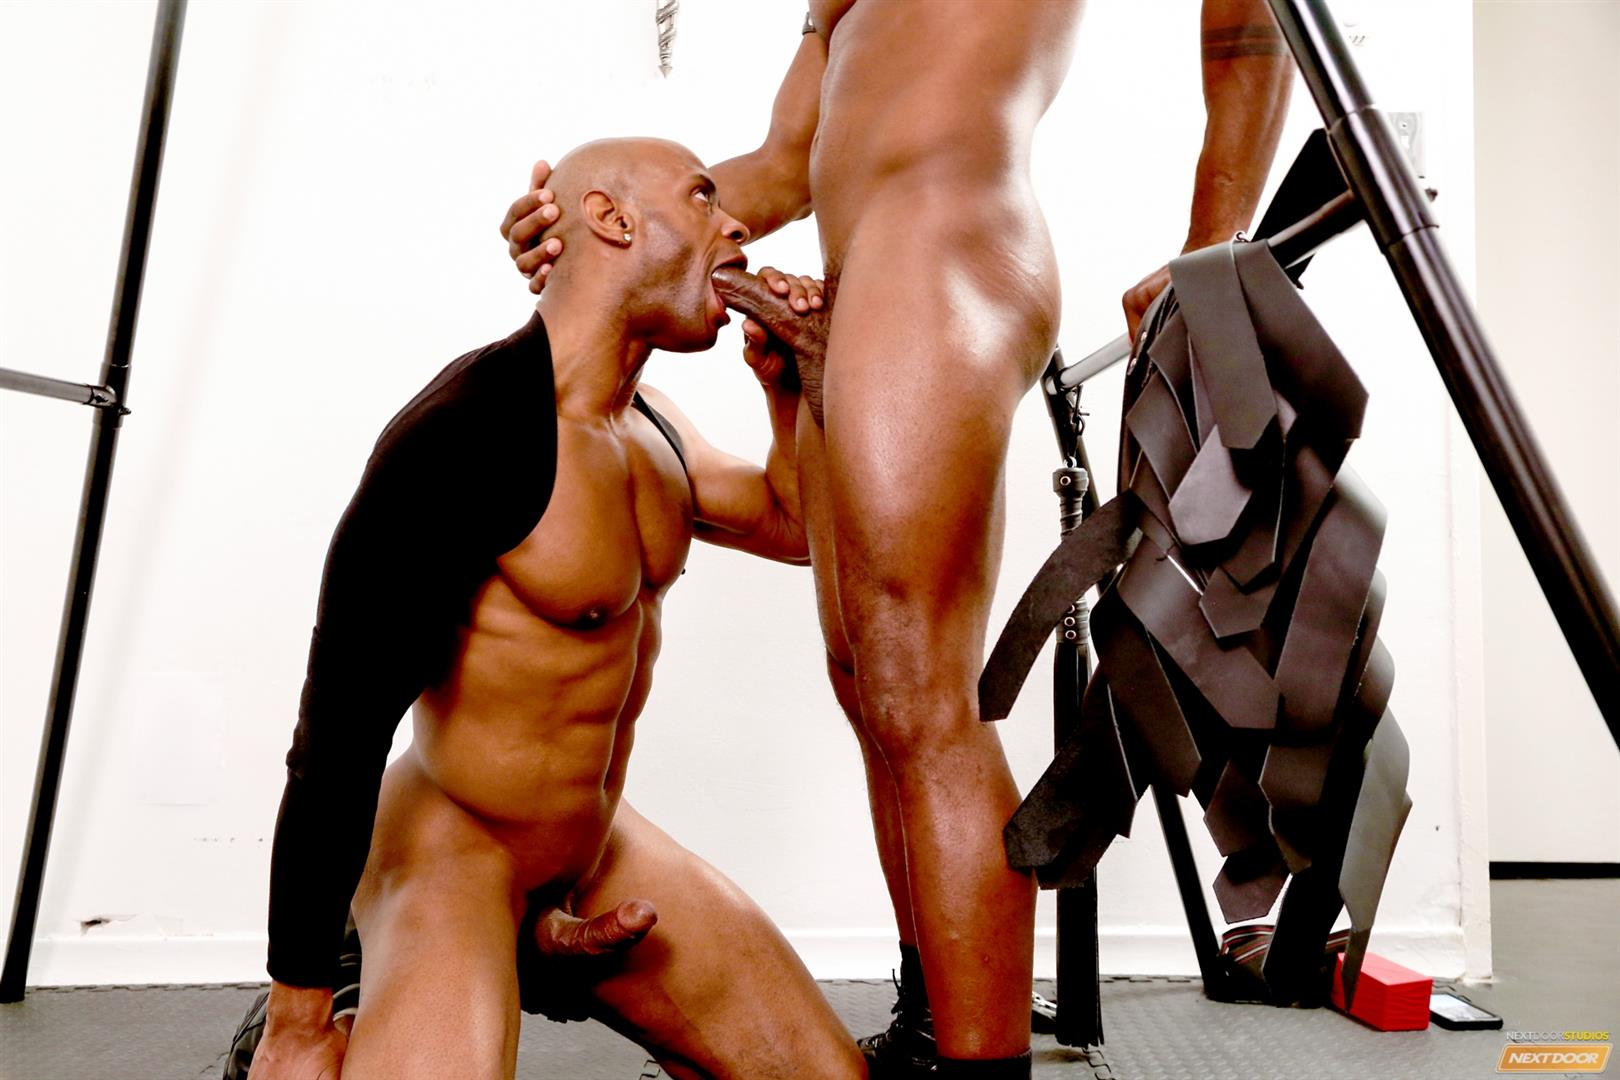 Marlone-Starr-and-Osiris-Blade-Next-Door-Ebony-Big-Black-Cocks-Fucking-Amateur-Gay-Porn-12 Osiris Blade Takes Marlone Starr's Massive Horse Cock Up The Ass